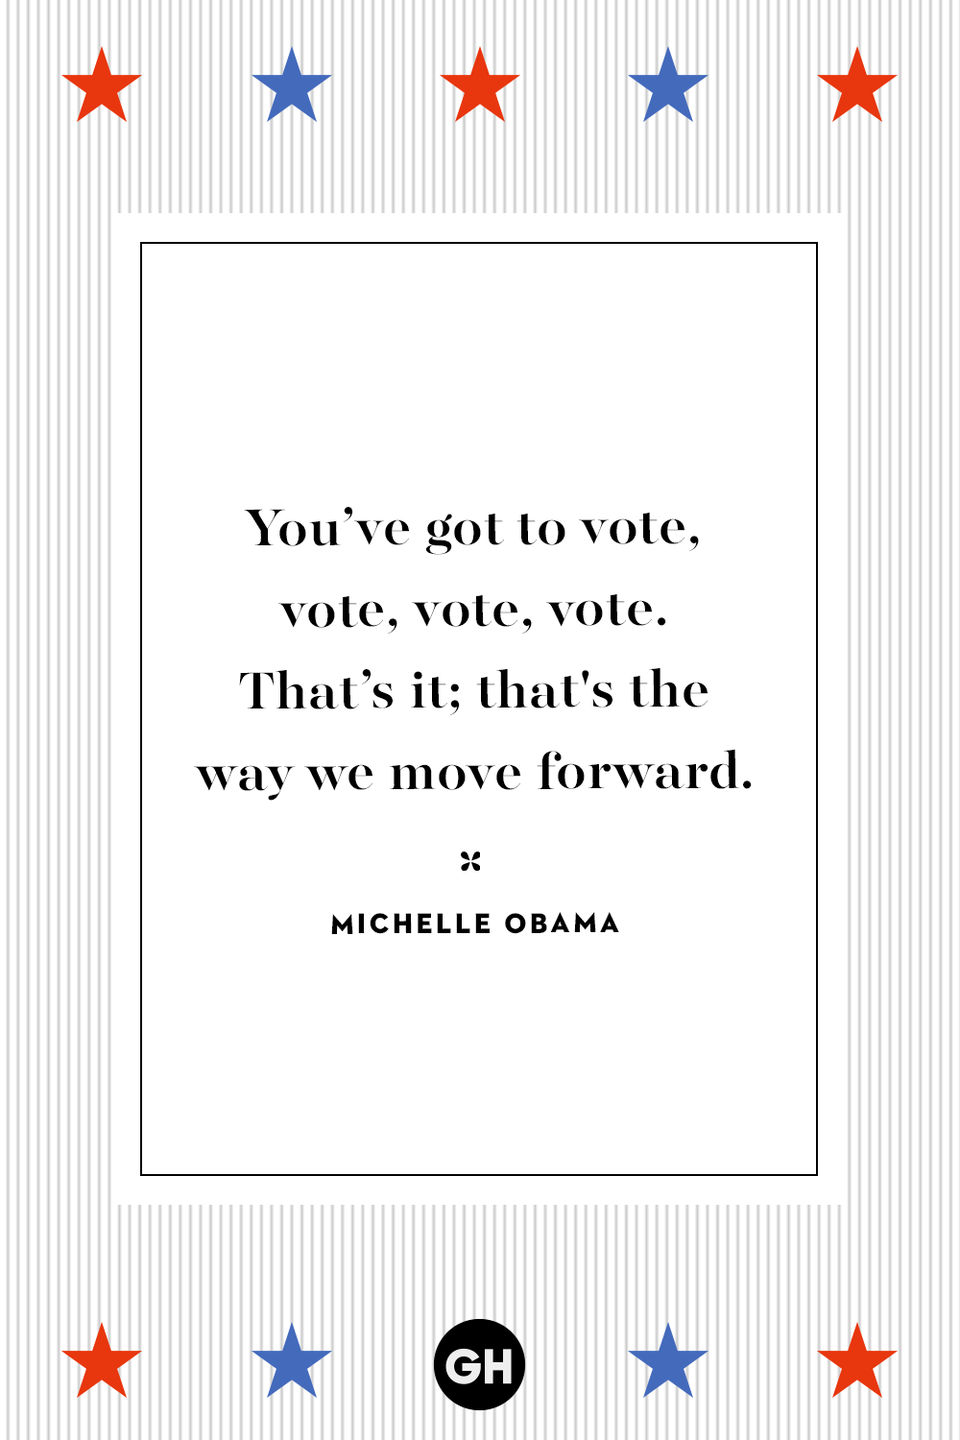 <p>You've got to vote, vote, vote, vote. That's it; that's the way we move forward.</p>